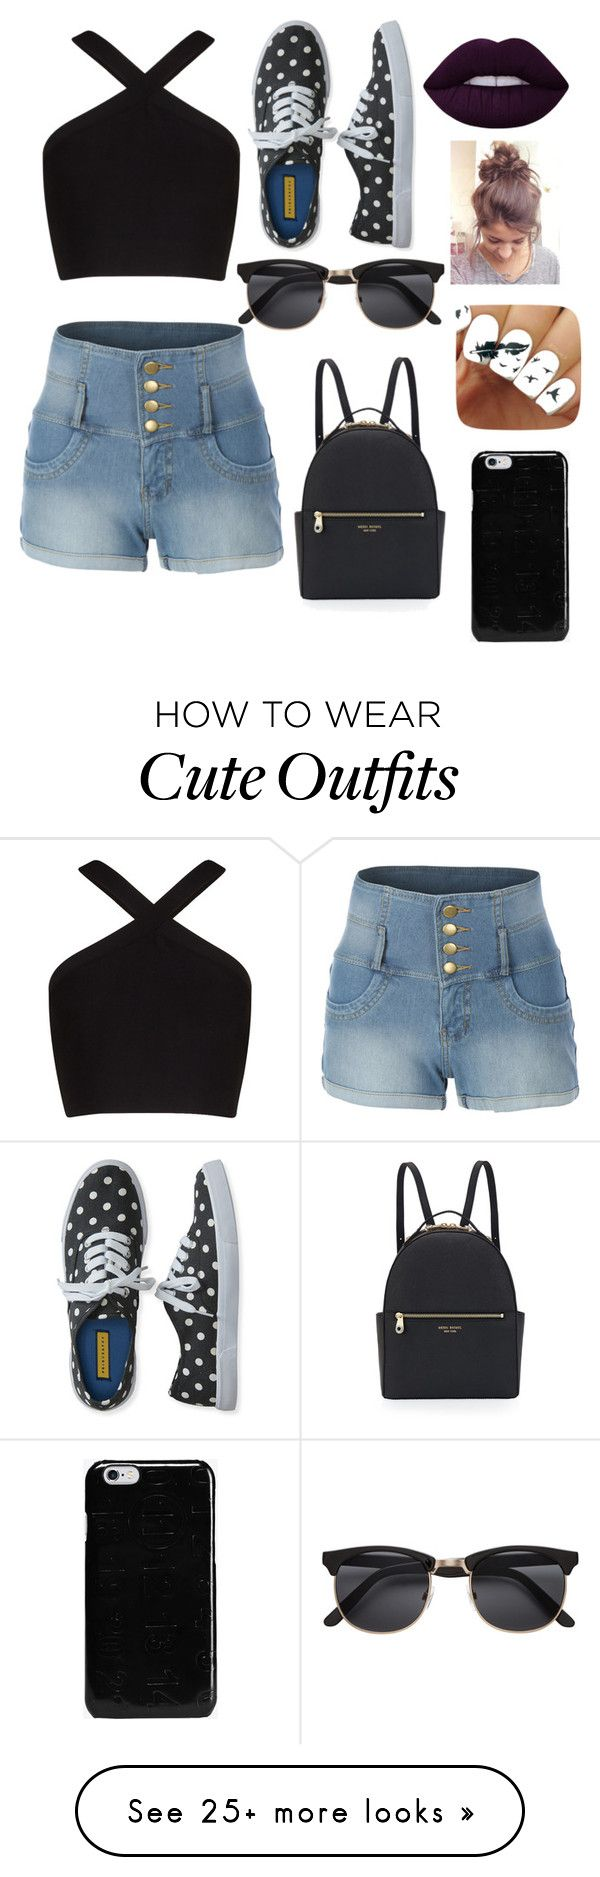 """""""My First Polyvore Outfit"""" by baranovakatia on Polyvore featuring LE3NO, BCBGMAXAZRIA, Aéropostale, Lime Crime, Maison Margiela and Henri Bendel"""